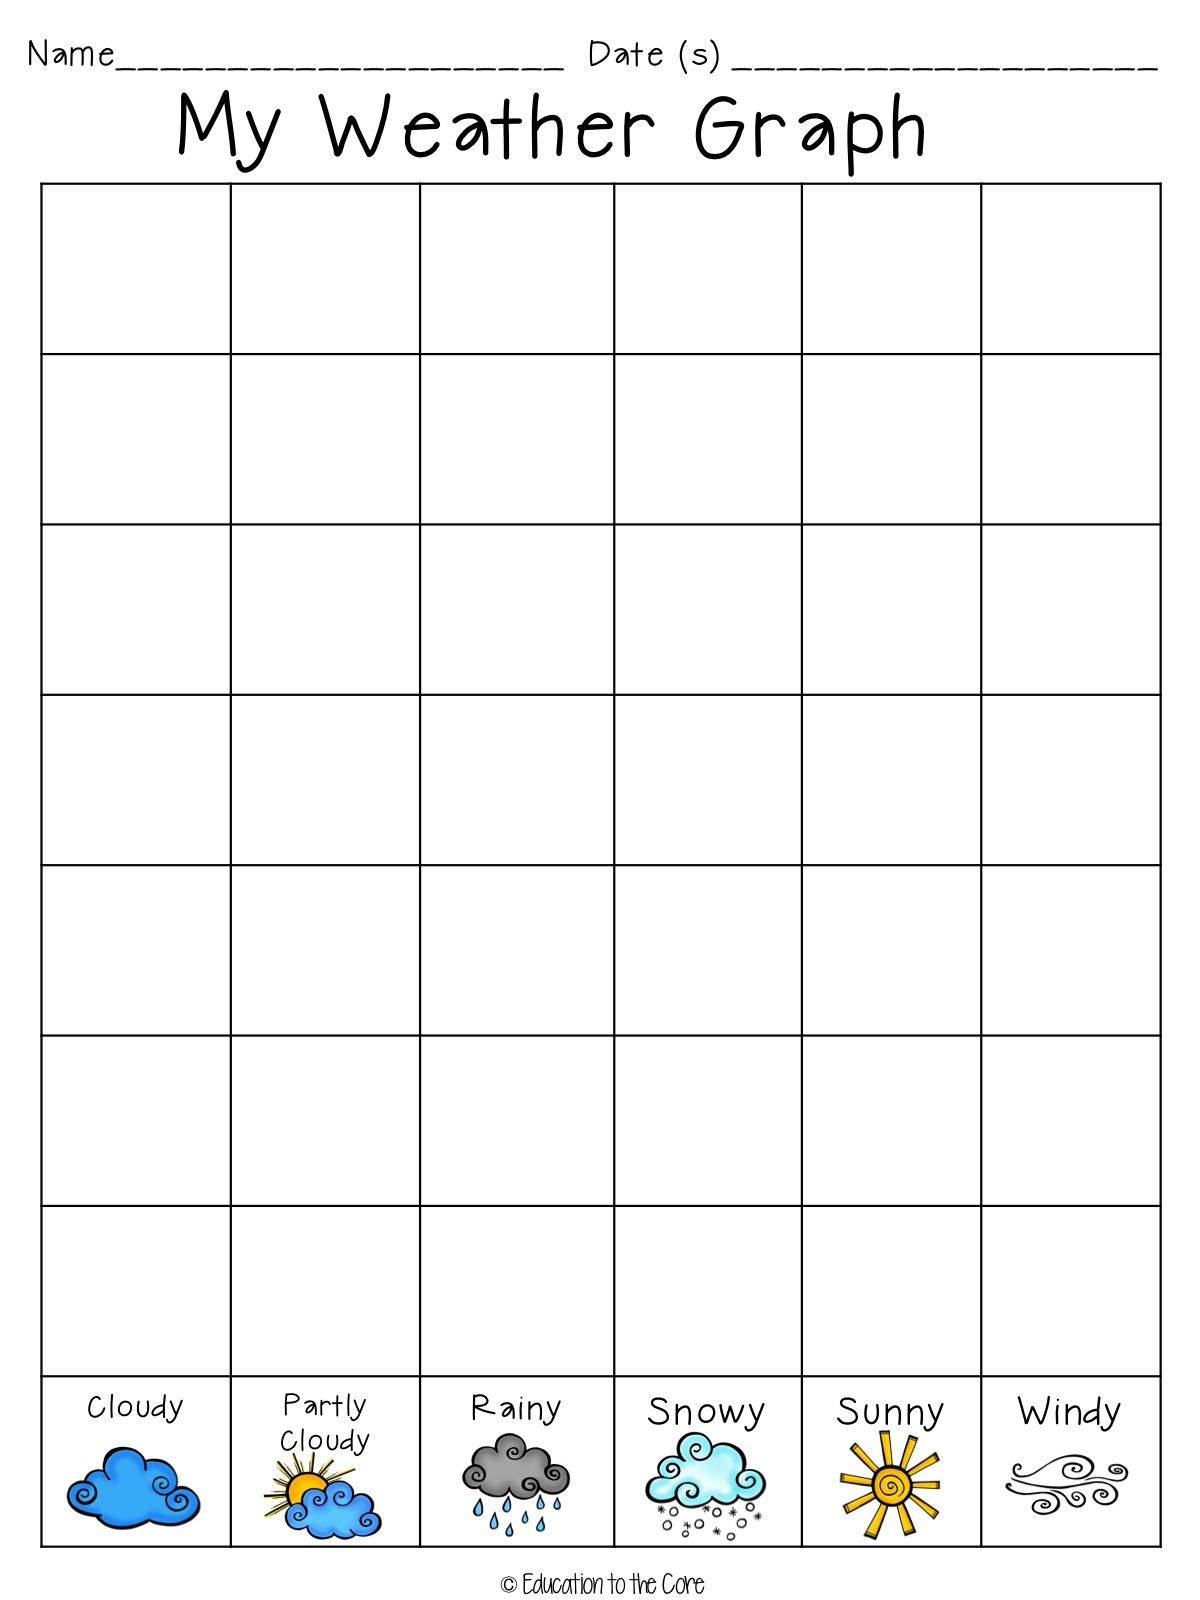 Weather Graphing And Writing Freebie Great For Recording The Different Weather Patterns In